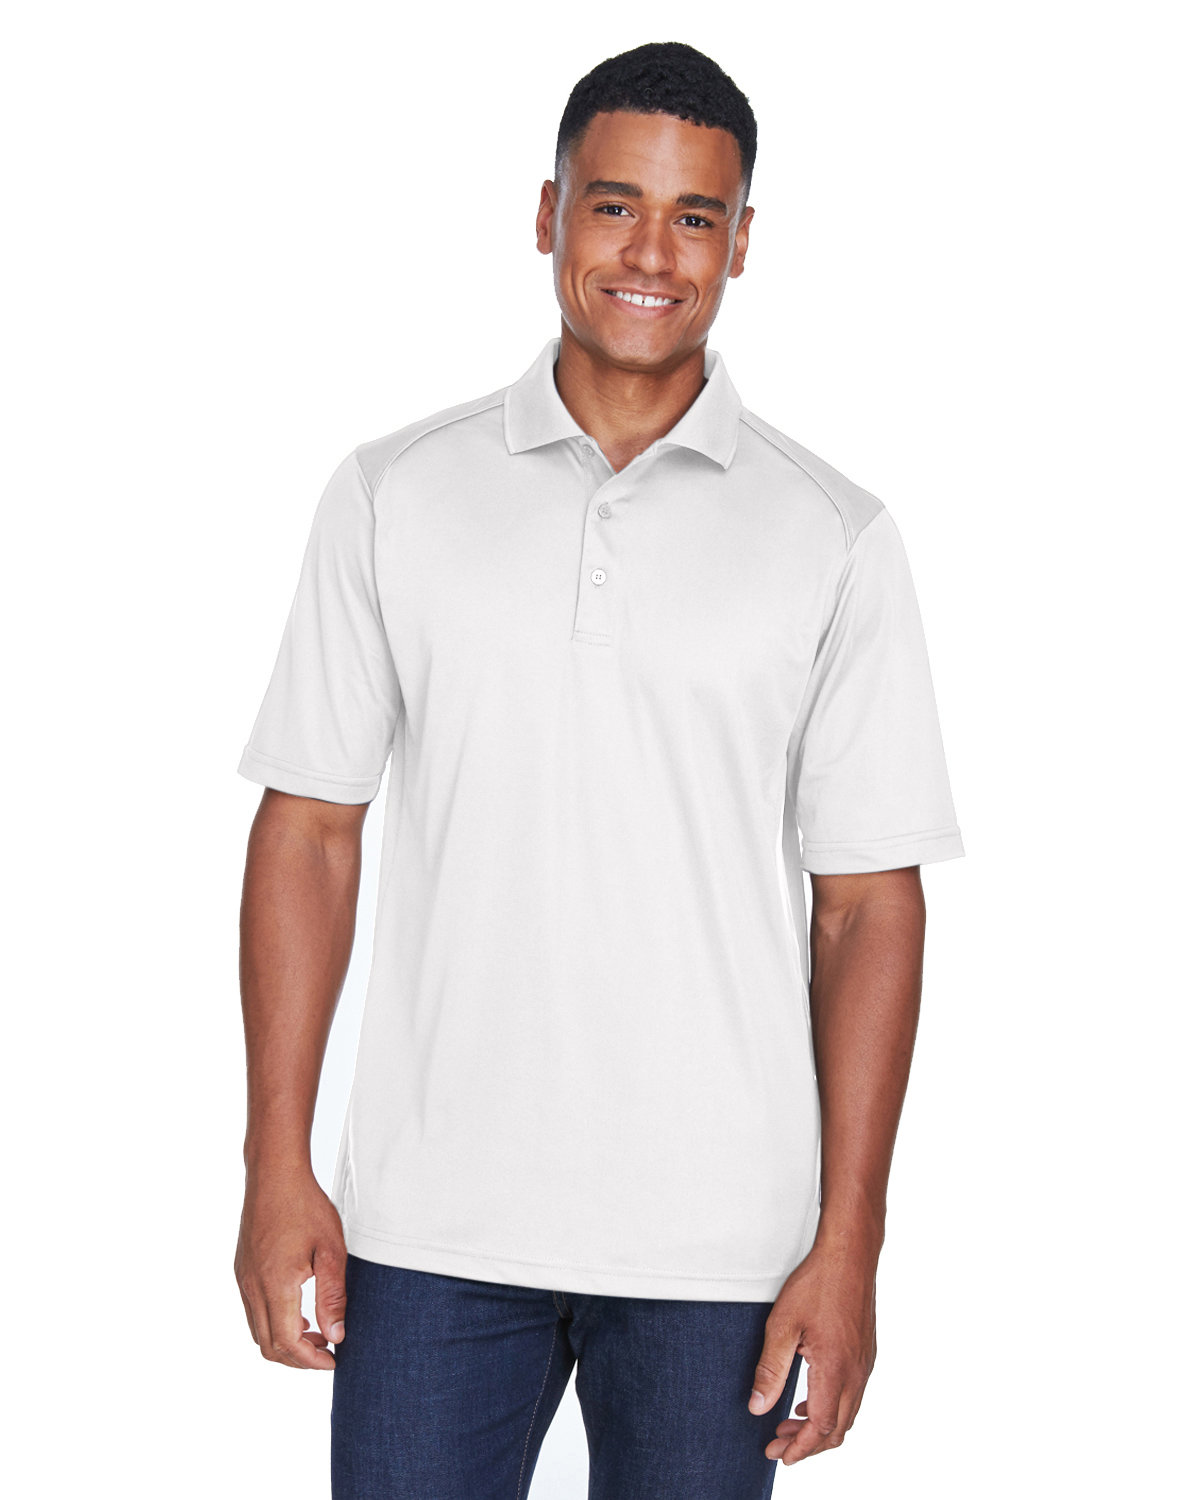 Ashe Xtream Mens Size Tall Eperformance Snag Protection Long-Sleeve Polo